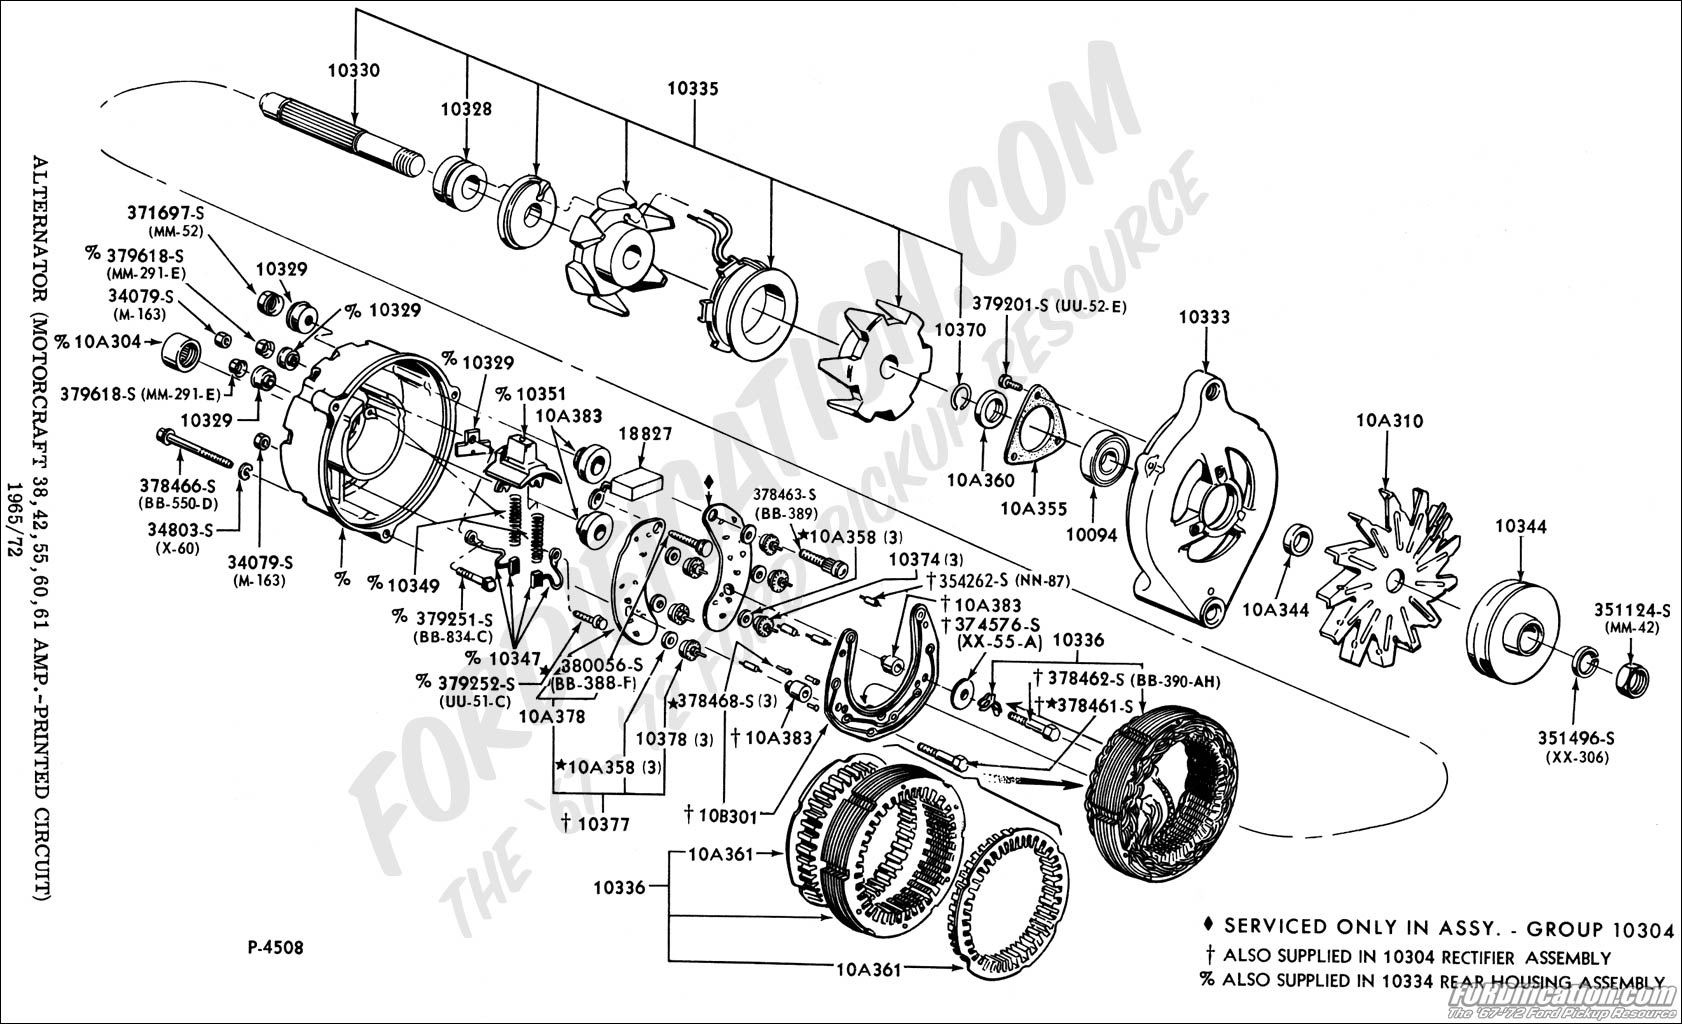 alternator01 ford truck technical drawings and schematics section i motorcraft alternator wiring diagram at panicattacktreatment.co